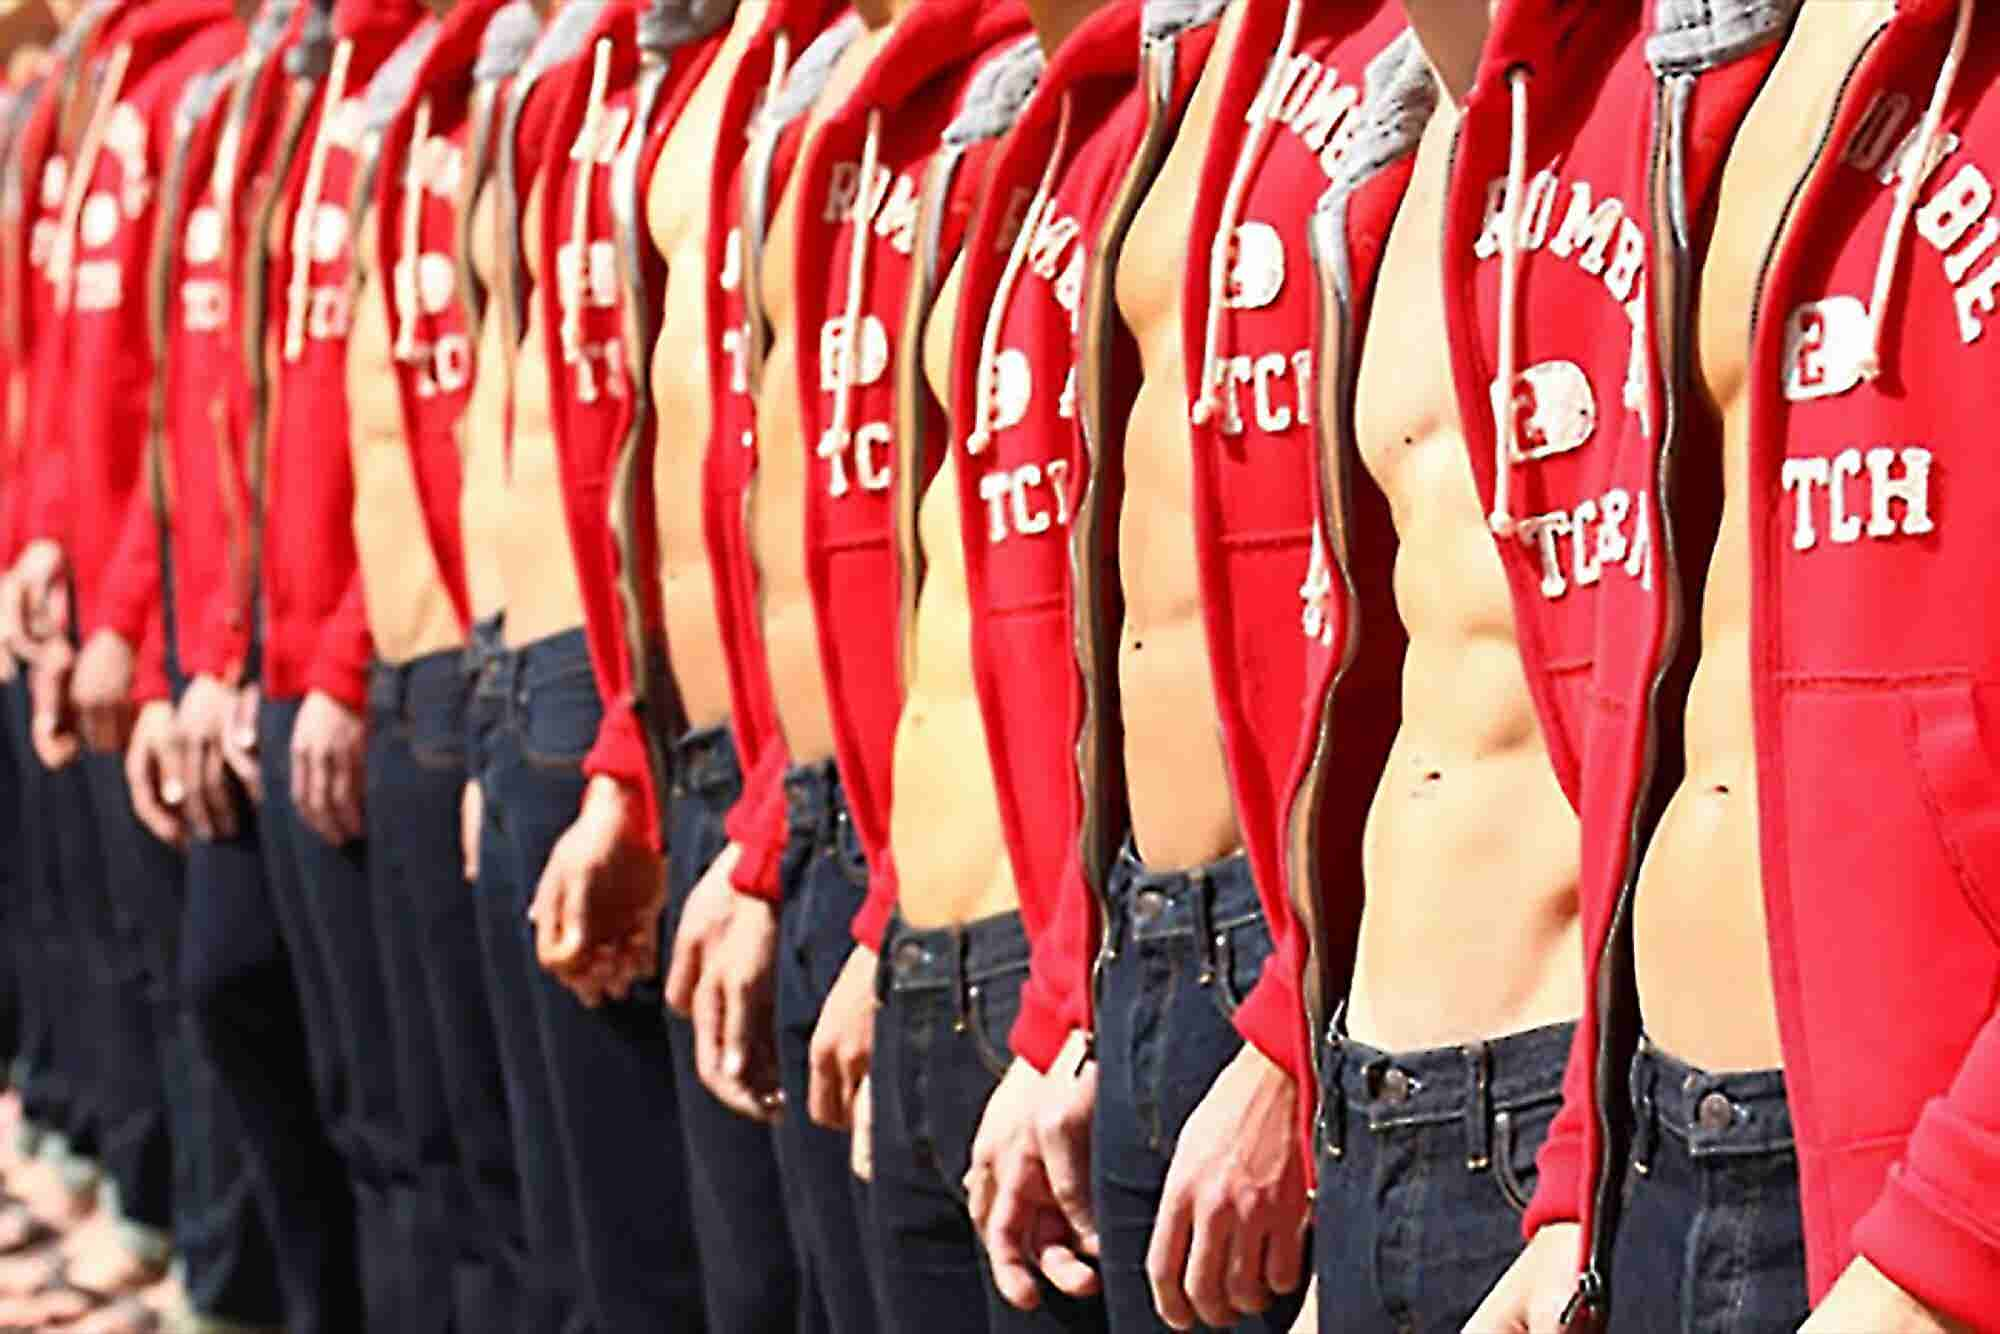 Abercrombie & Fitch:  Bad Business or Smart Targeting?